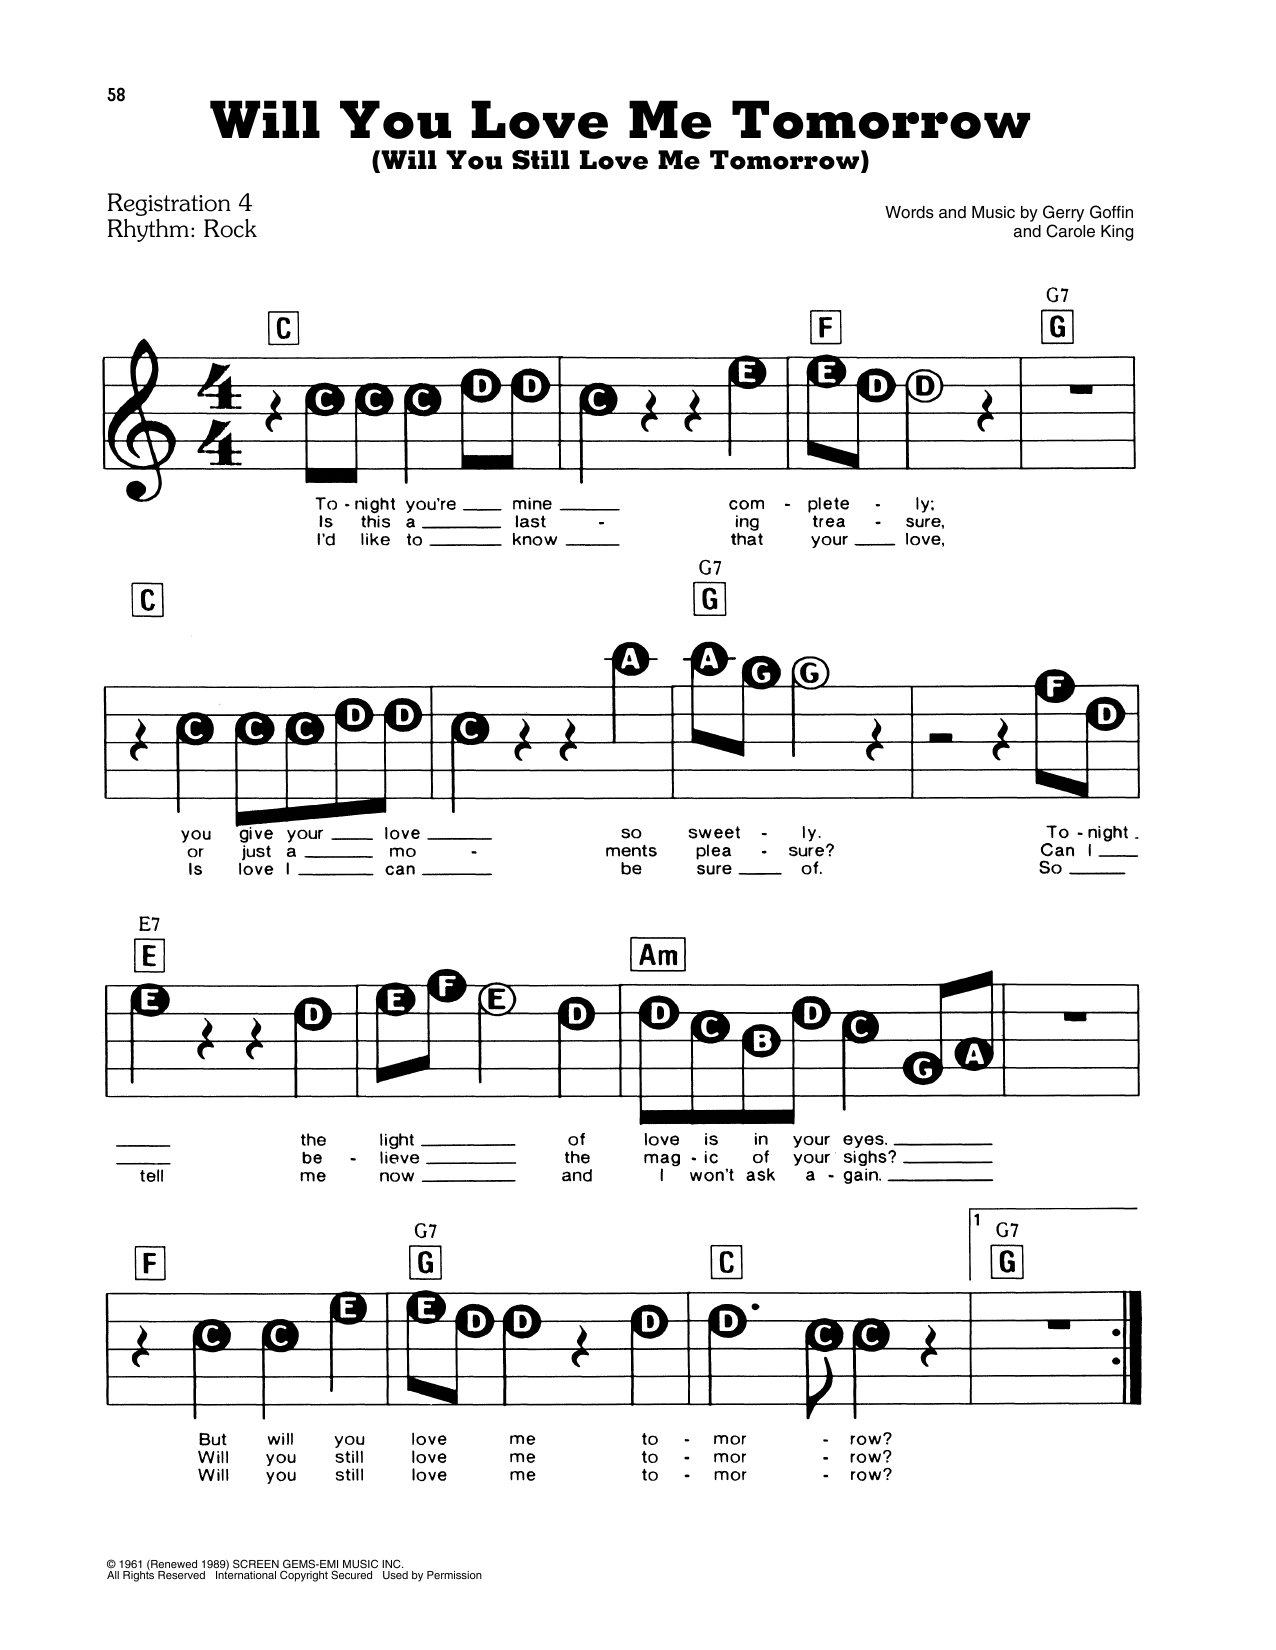 Will You Love Me Tomorrow (Will You Still Love Me Tomorrow) Sheet Music